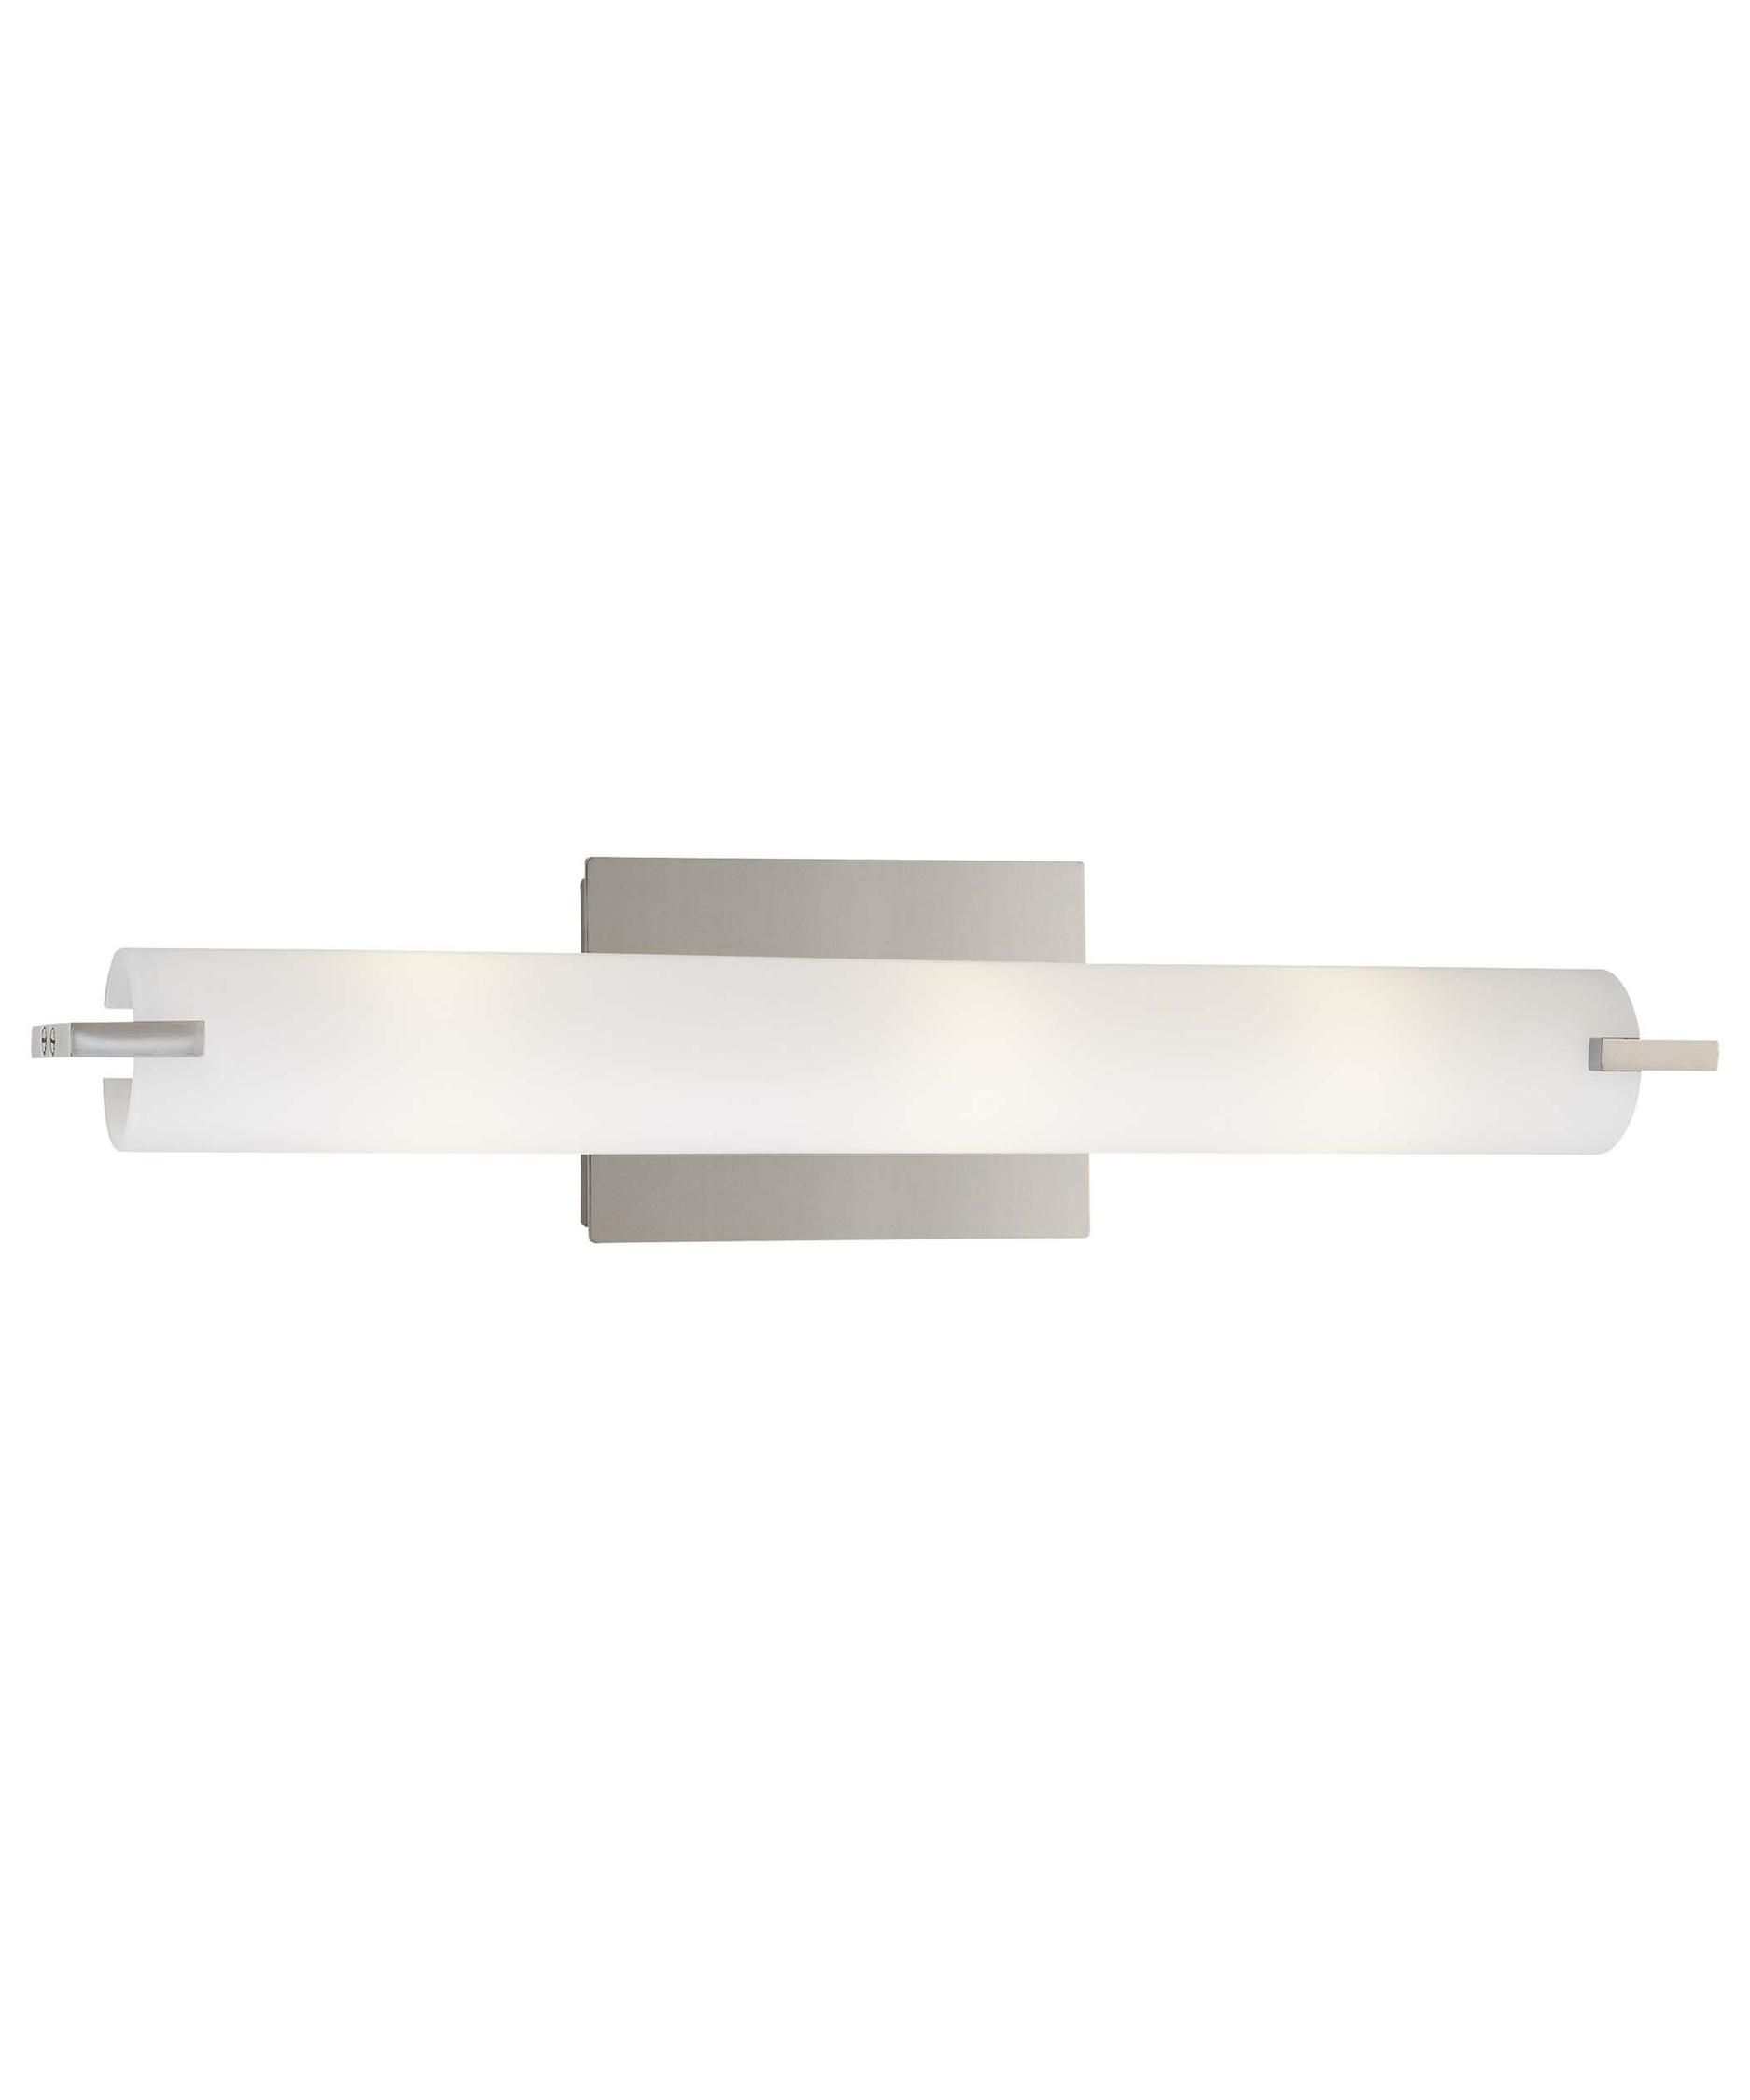 kovacs p tubes  inch wide bath vanity light  capitol  - shown in chrome finish and etched opal glass